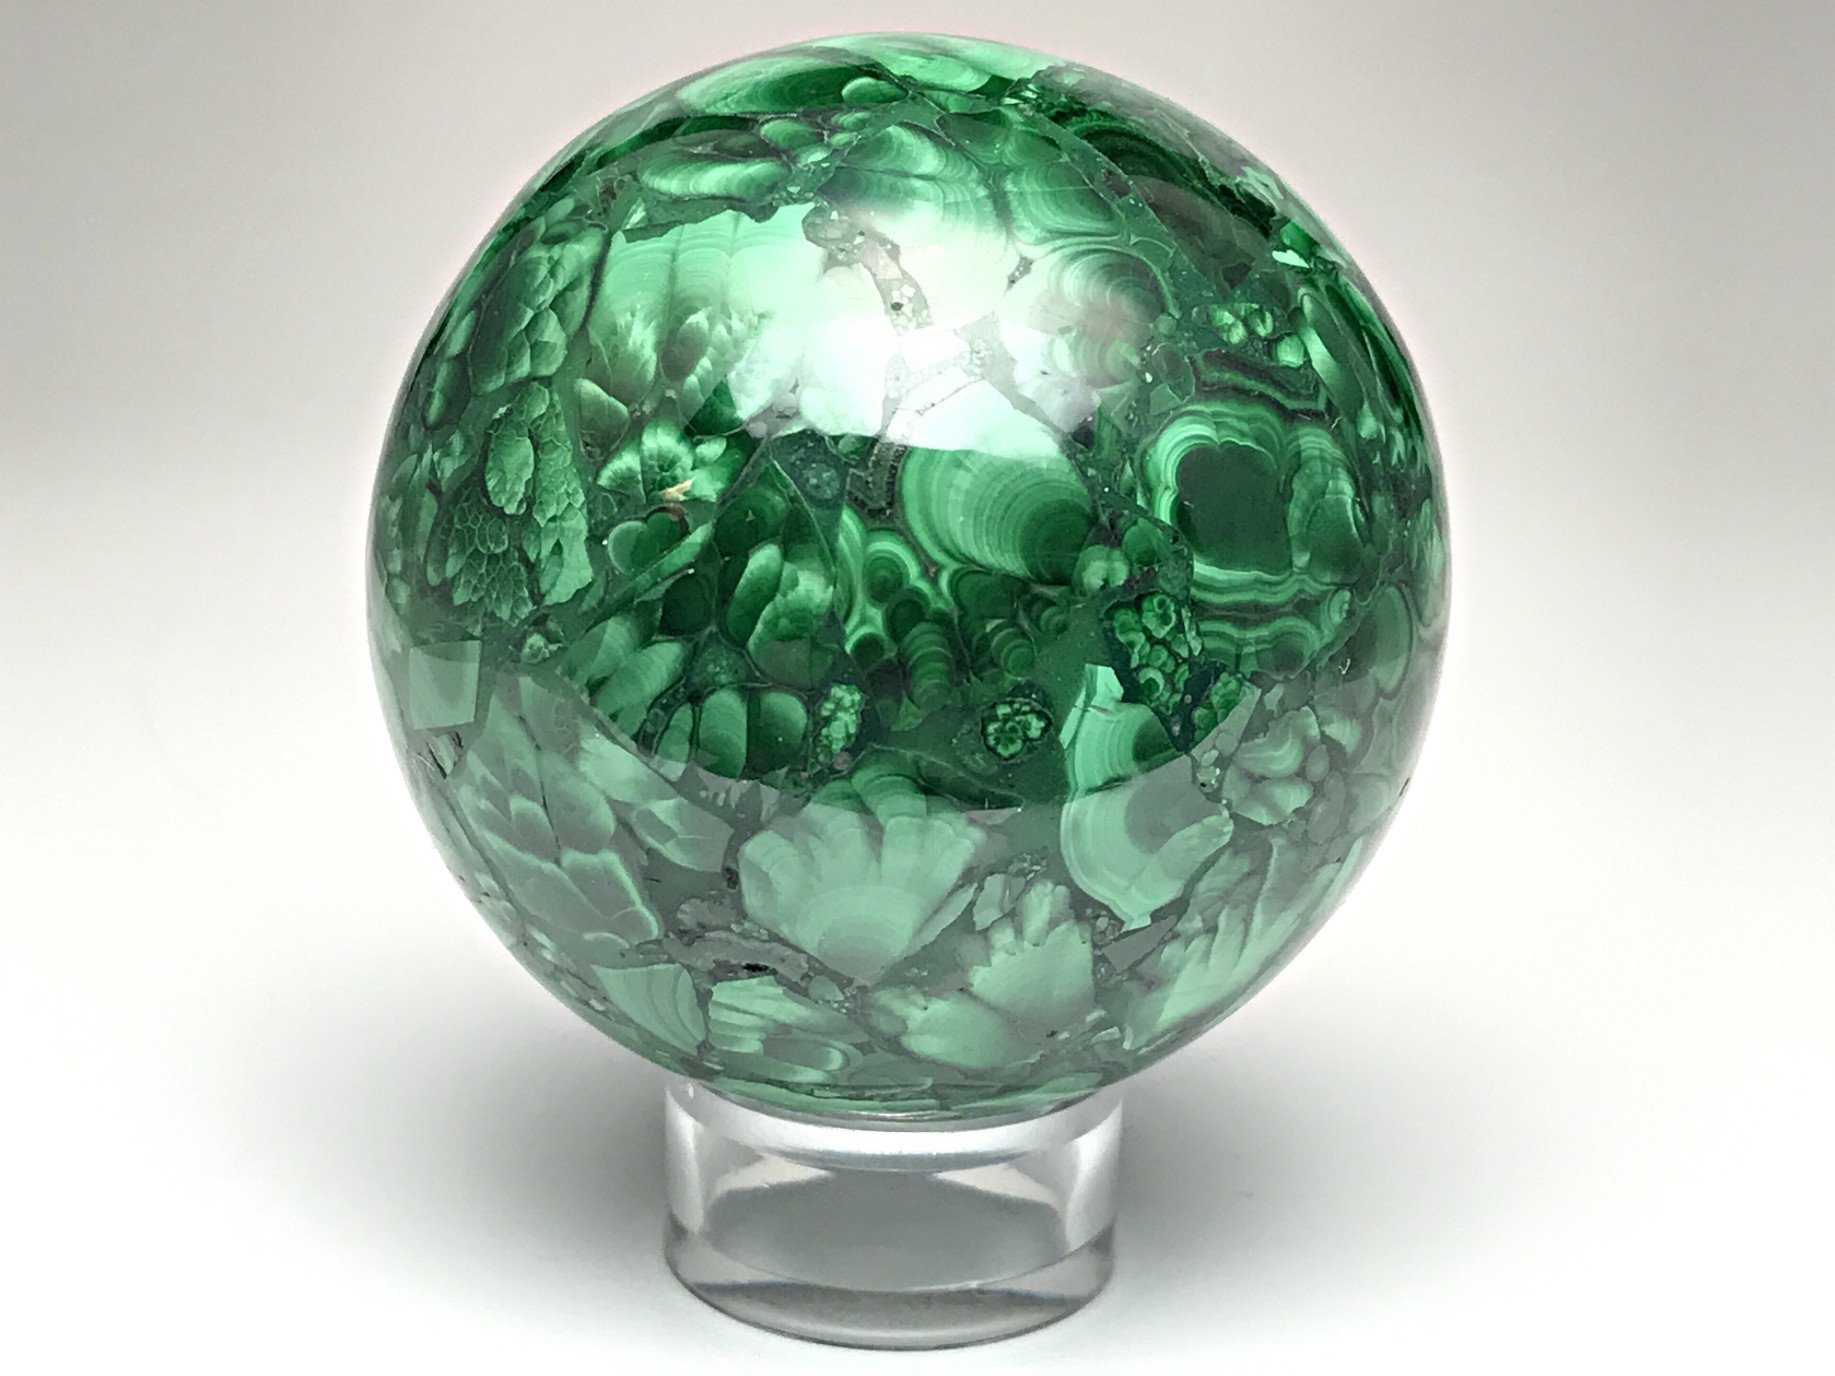 Astro Gallery Of Gems Polished Malachite Sphere - 284. 4 Grams